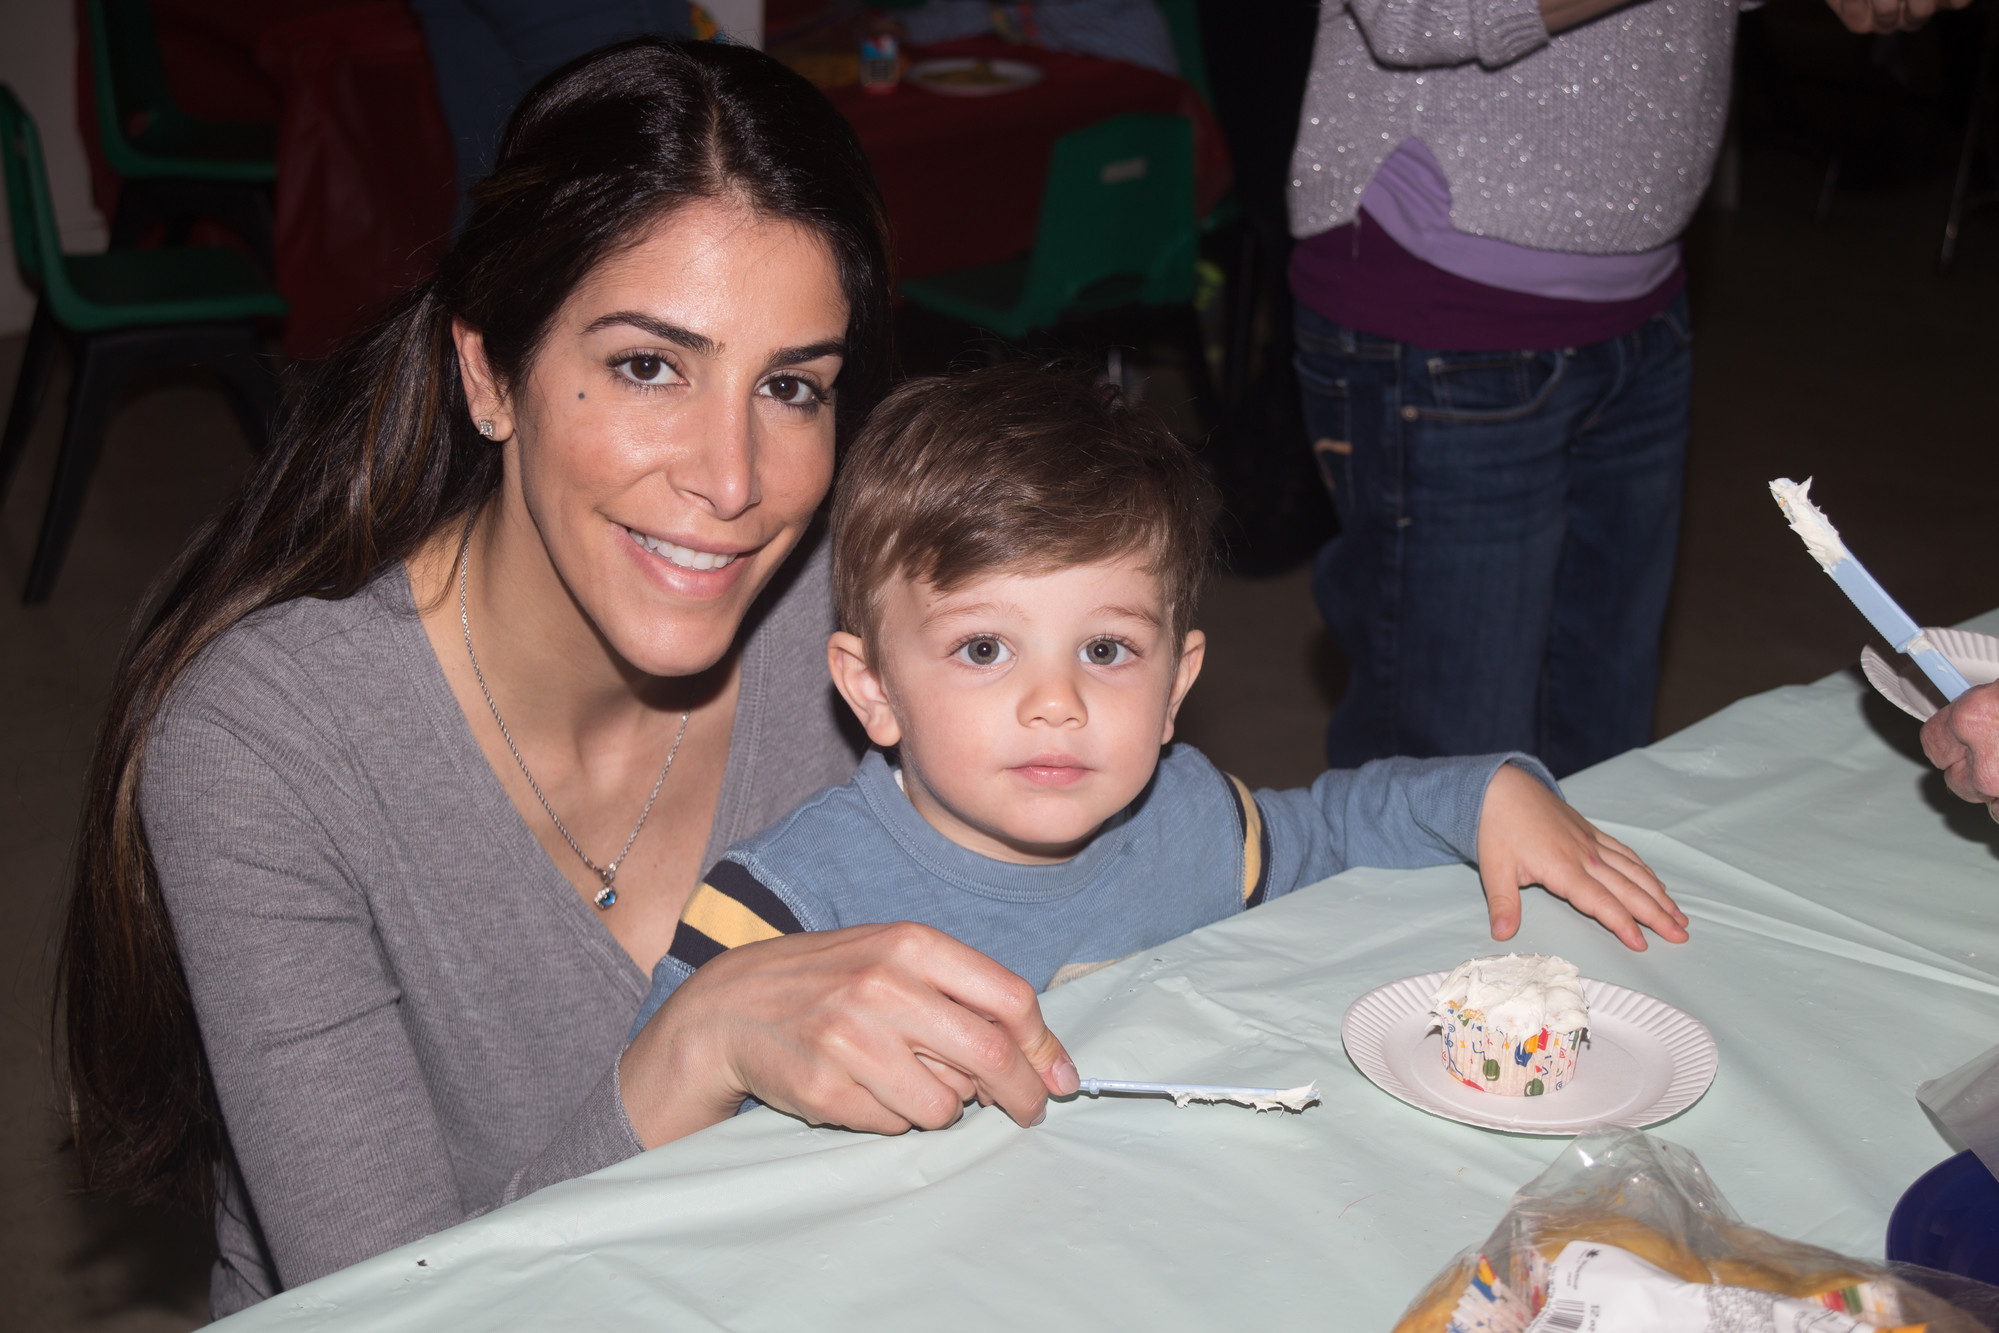 Michele and Michael Devito, 2, had a cupcake at First Presbyterian Church.